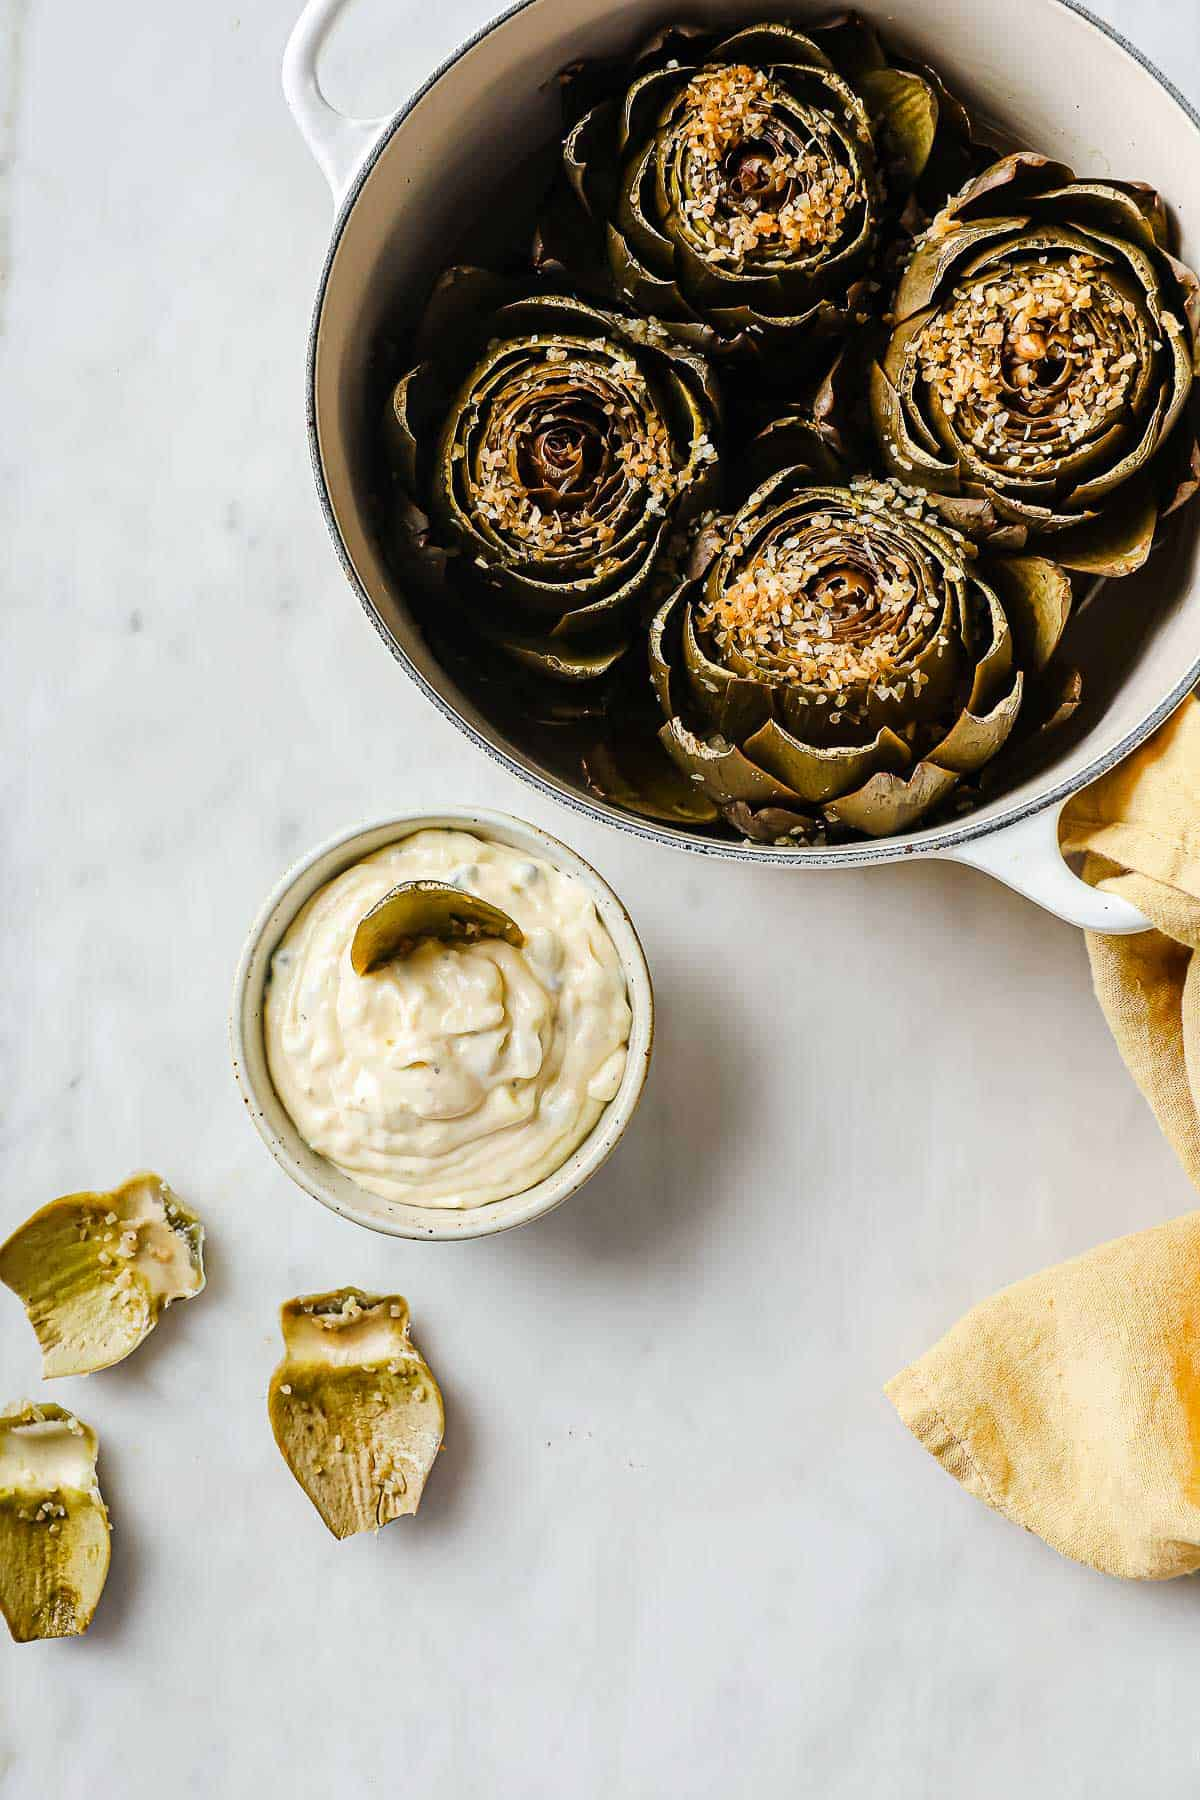 steamed artichokes with plucked leaves next to them, served with a lemon caper aioli sauce